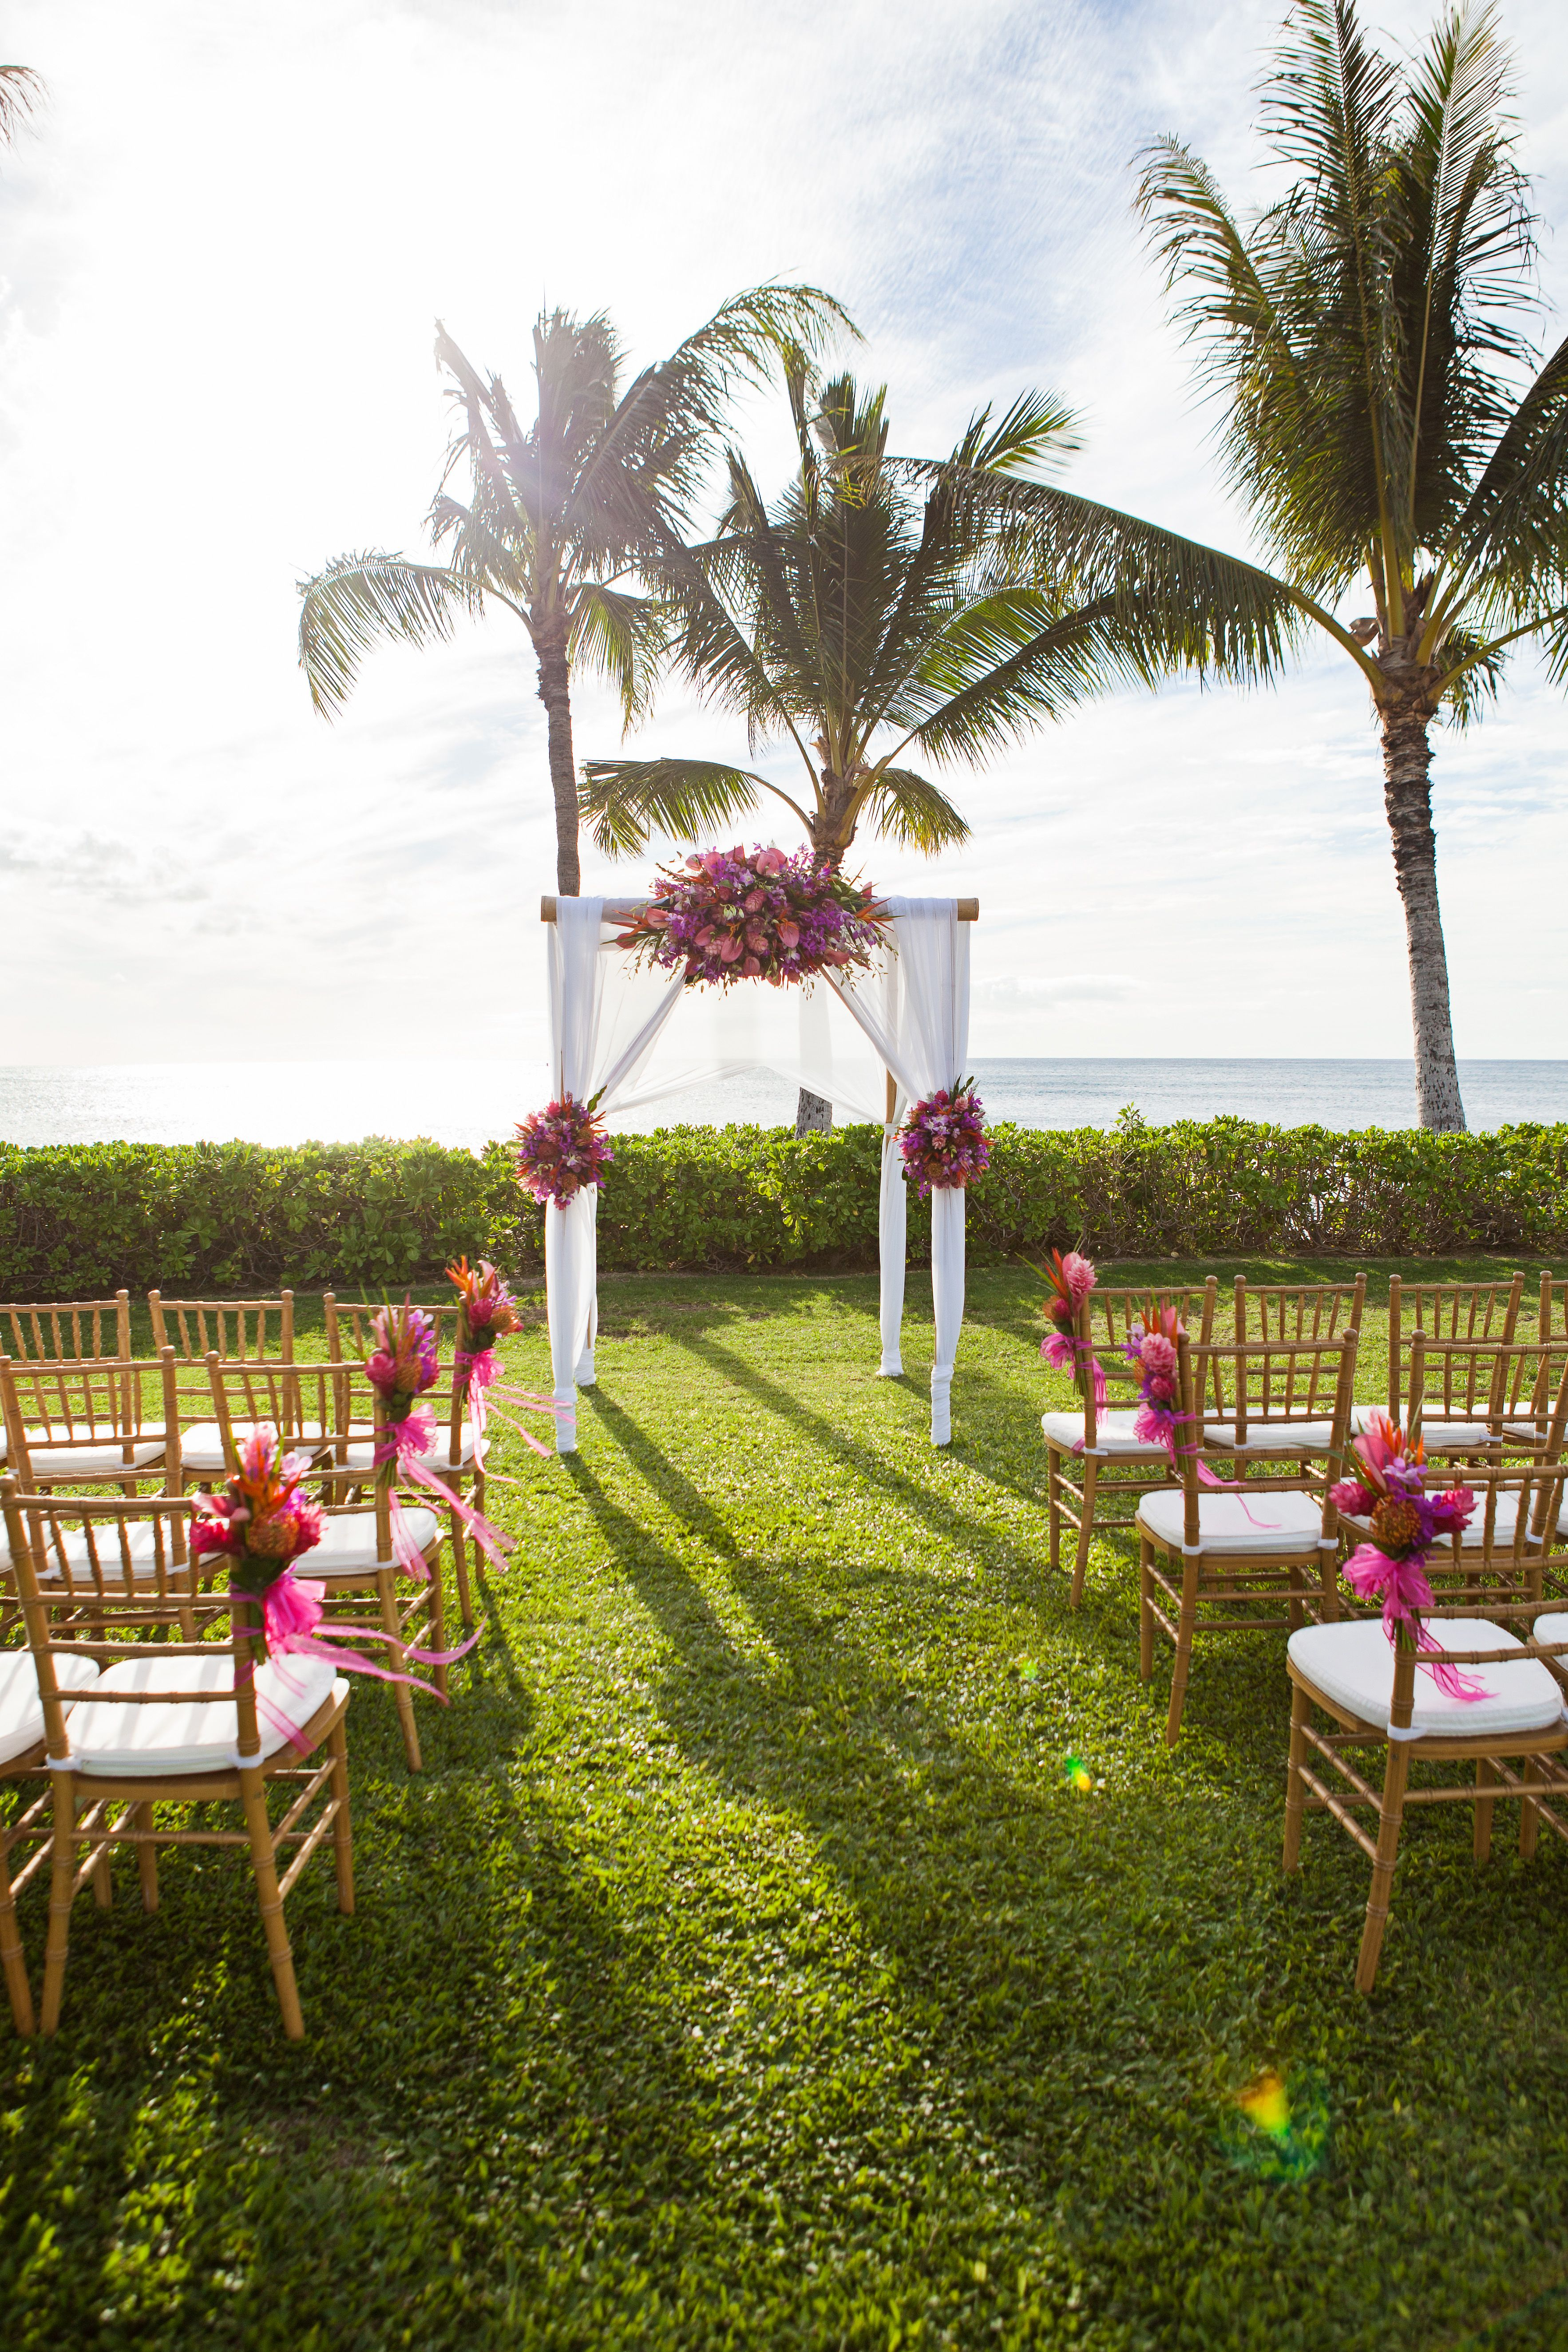 Ceremony Decor For Saori And Edmund S Paradise Cove Wedding Planned By Hawaii Weddings Tori Rogers Flowers The Blooming Pot